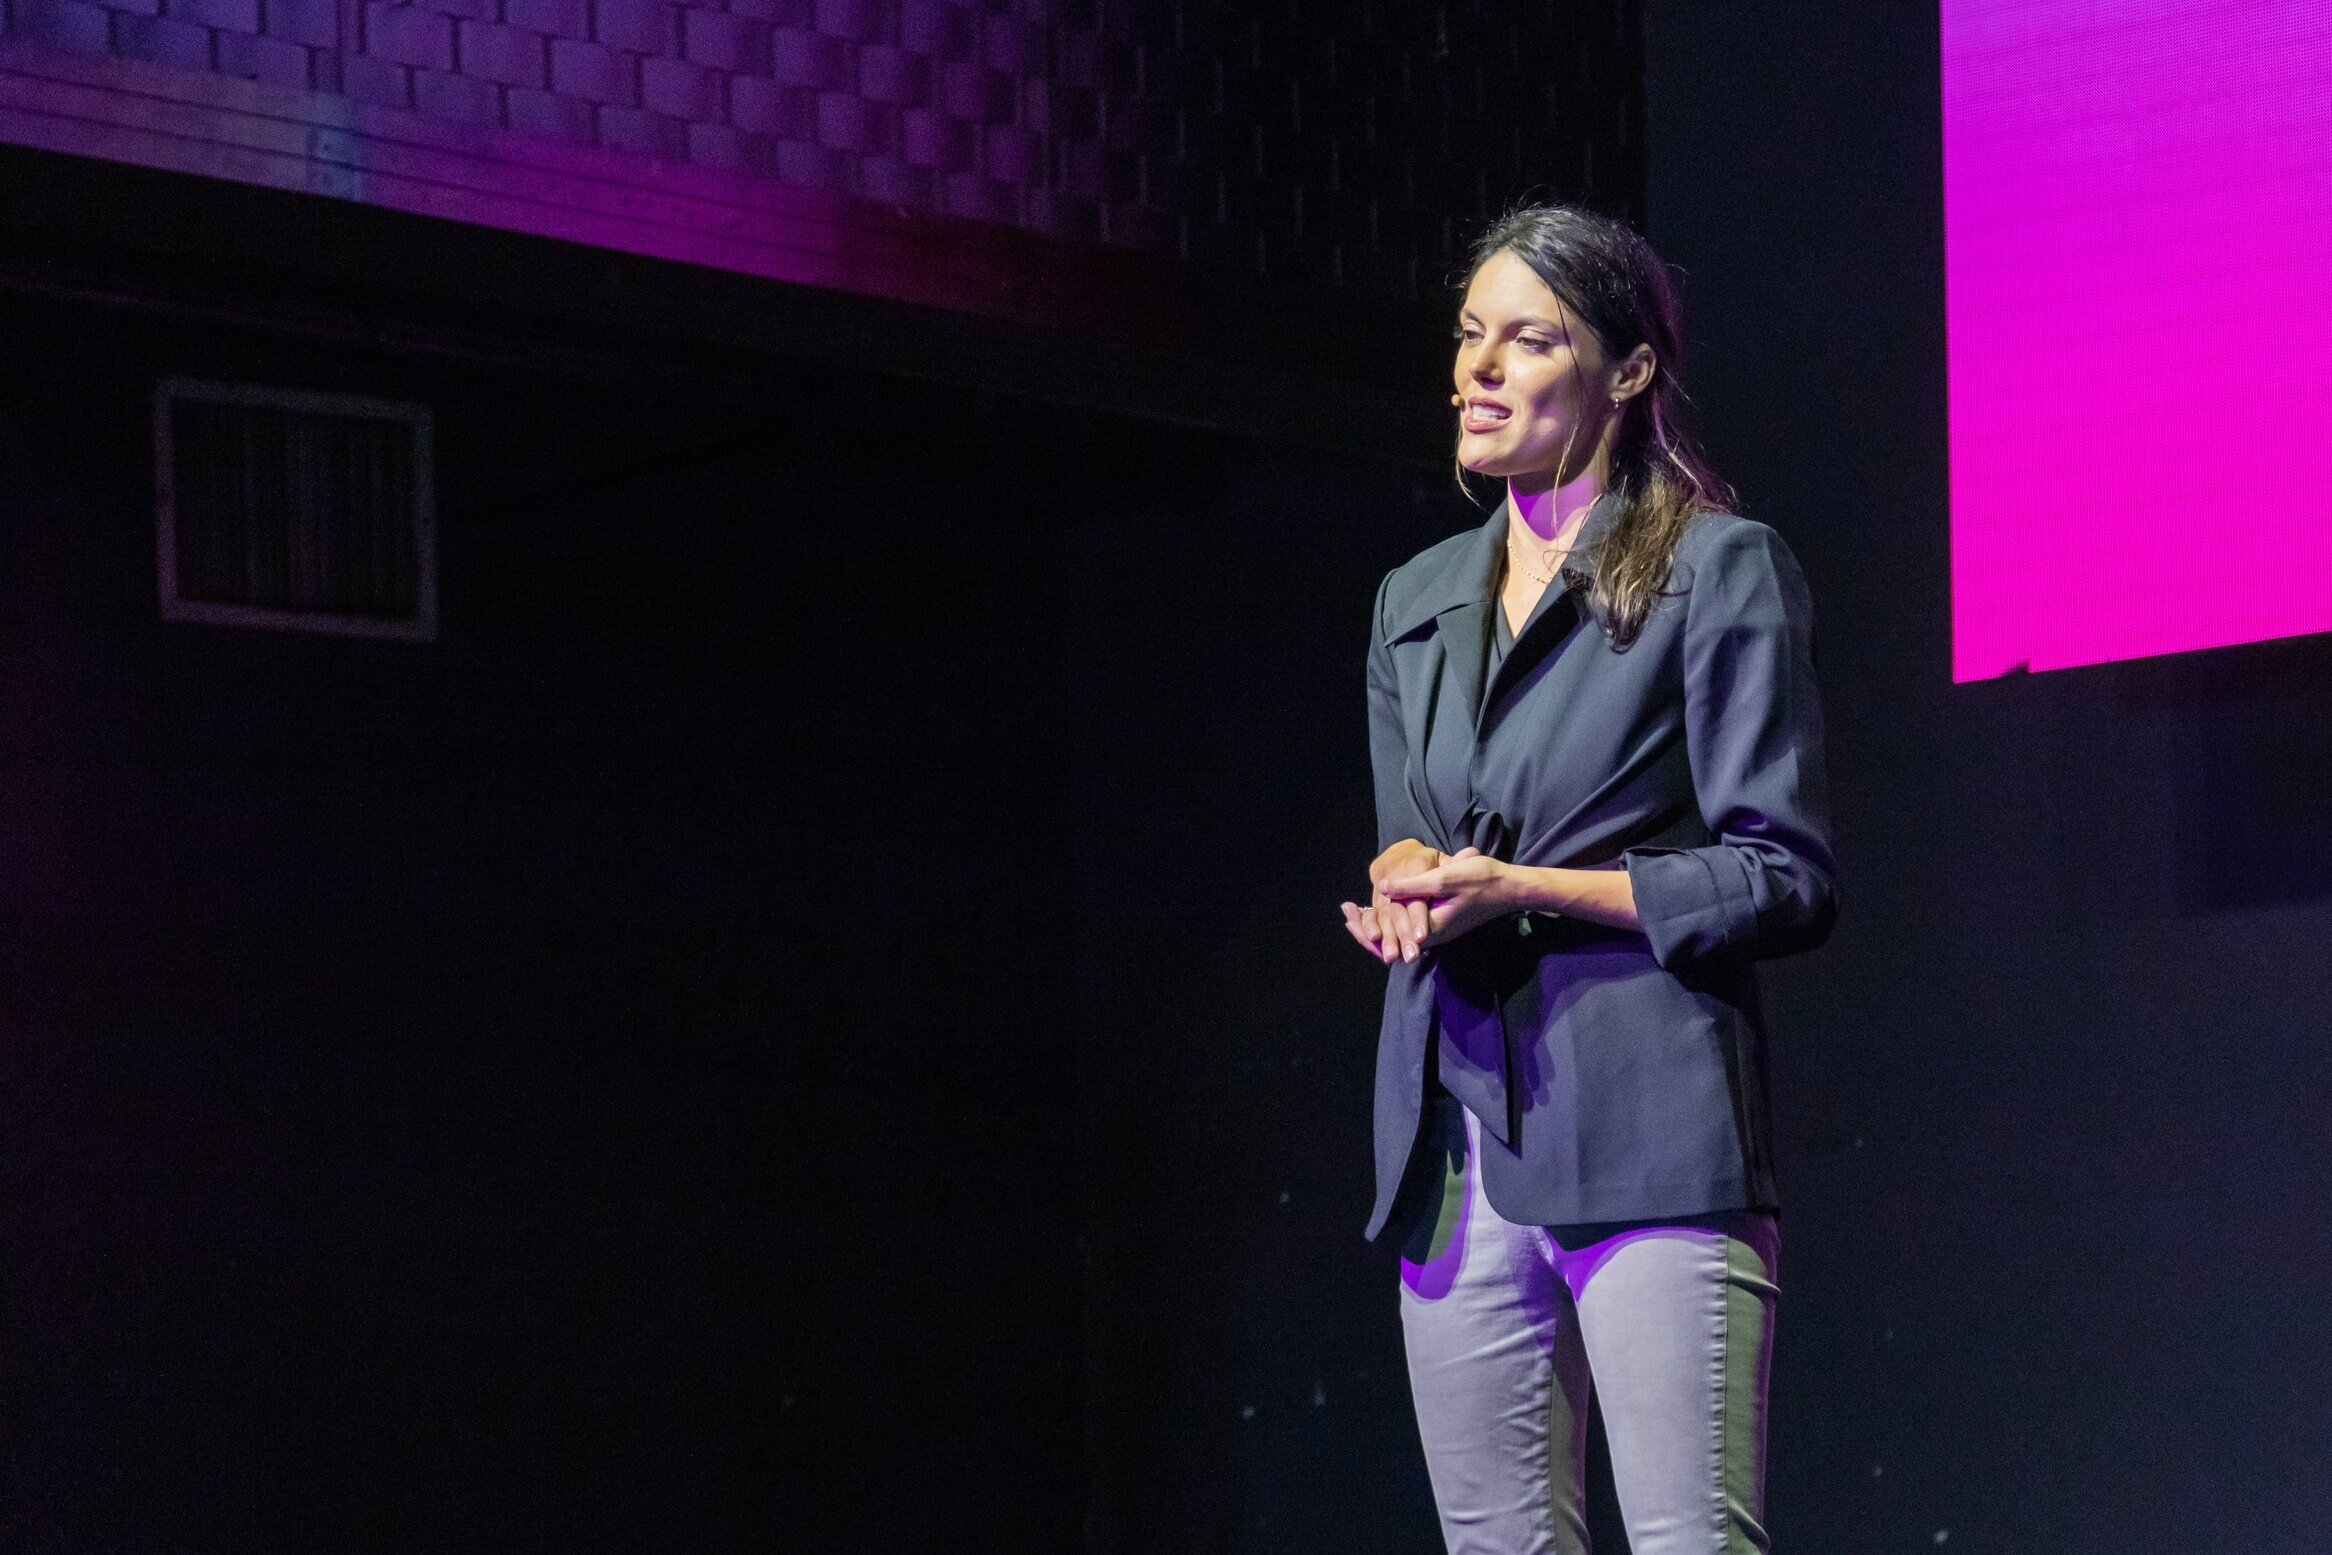 SPEAKING - Electrify and inspire your audience.